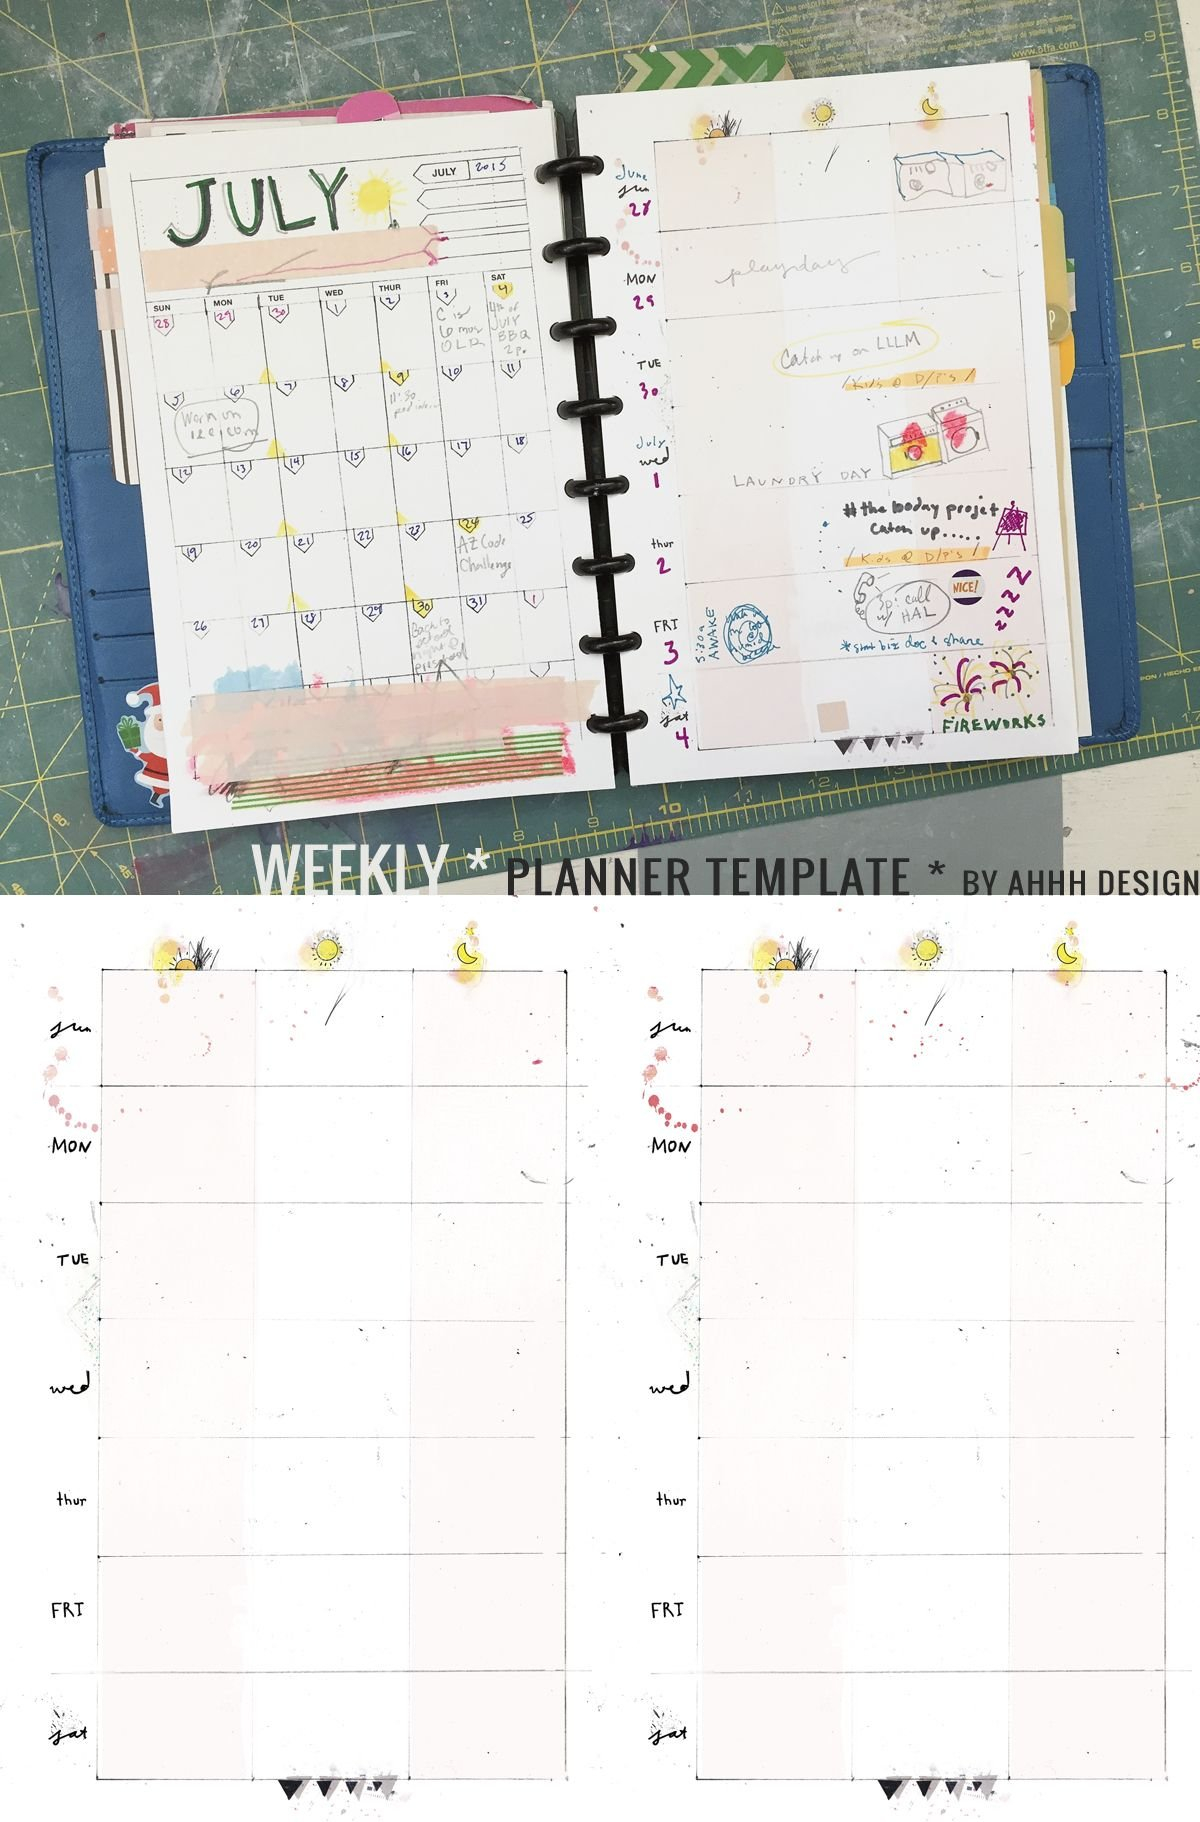 A Messy Week | Planner Template, Daily Planner Diy, Diy Planner Daily Planner Printable Editable Free 8.5 X 5.5